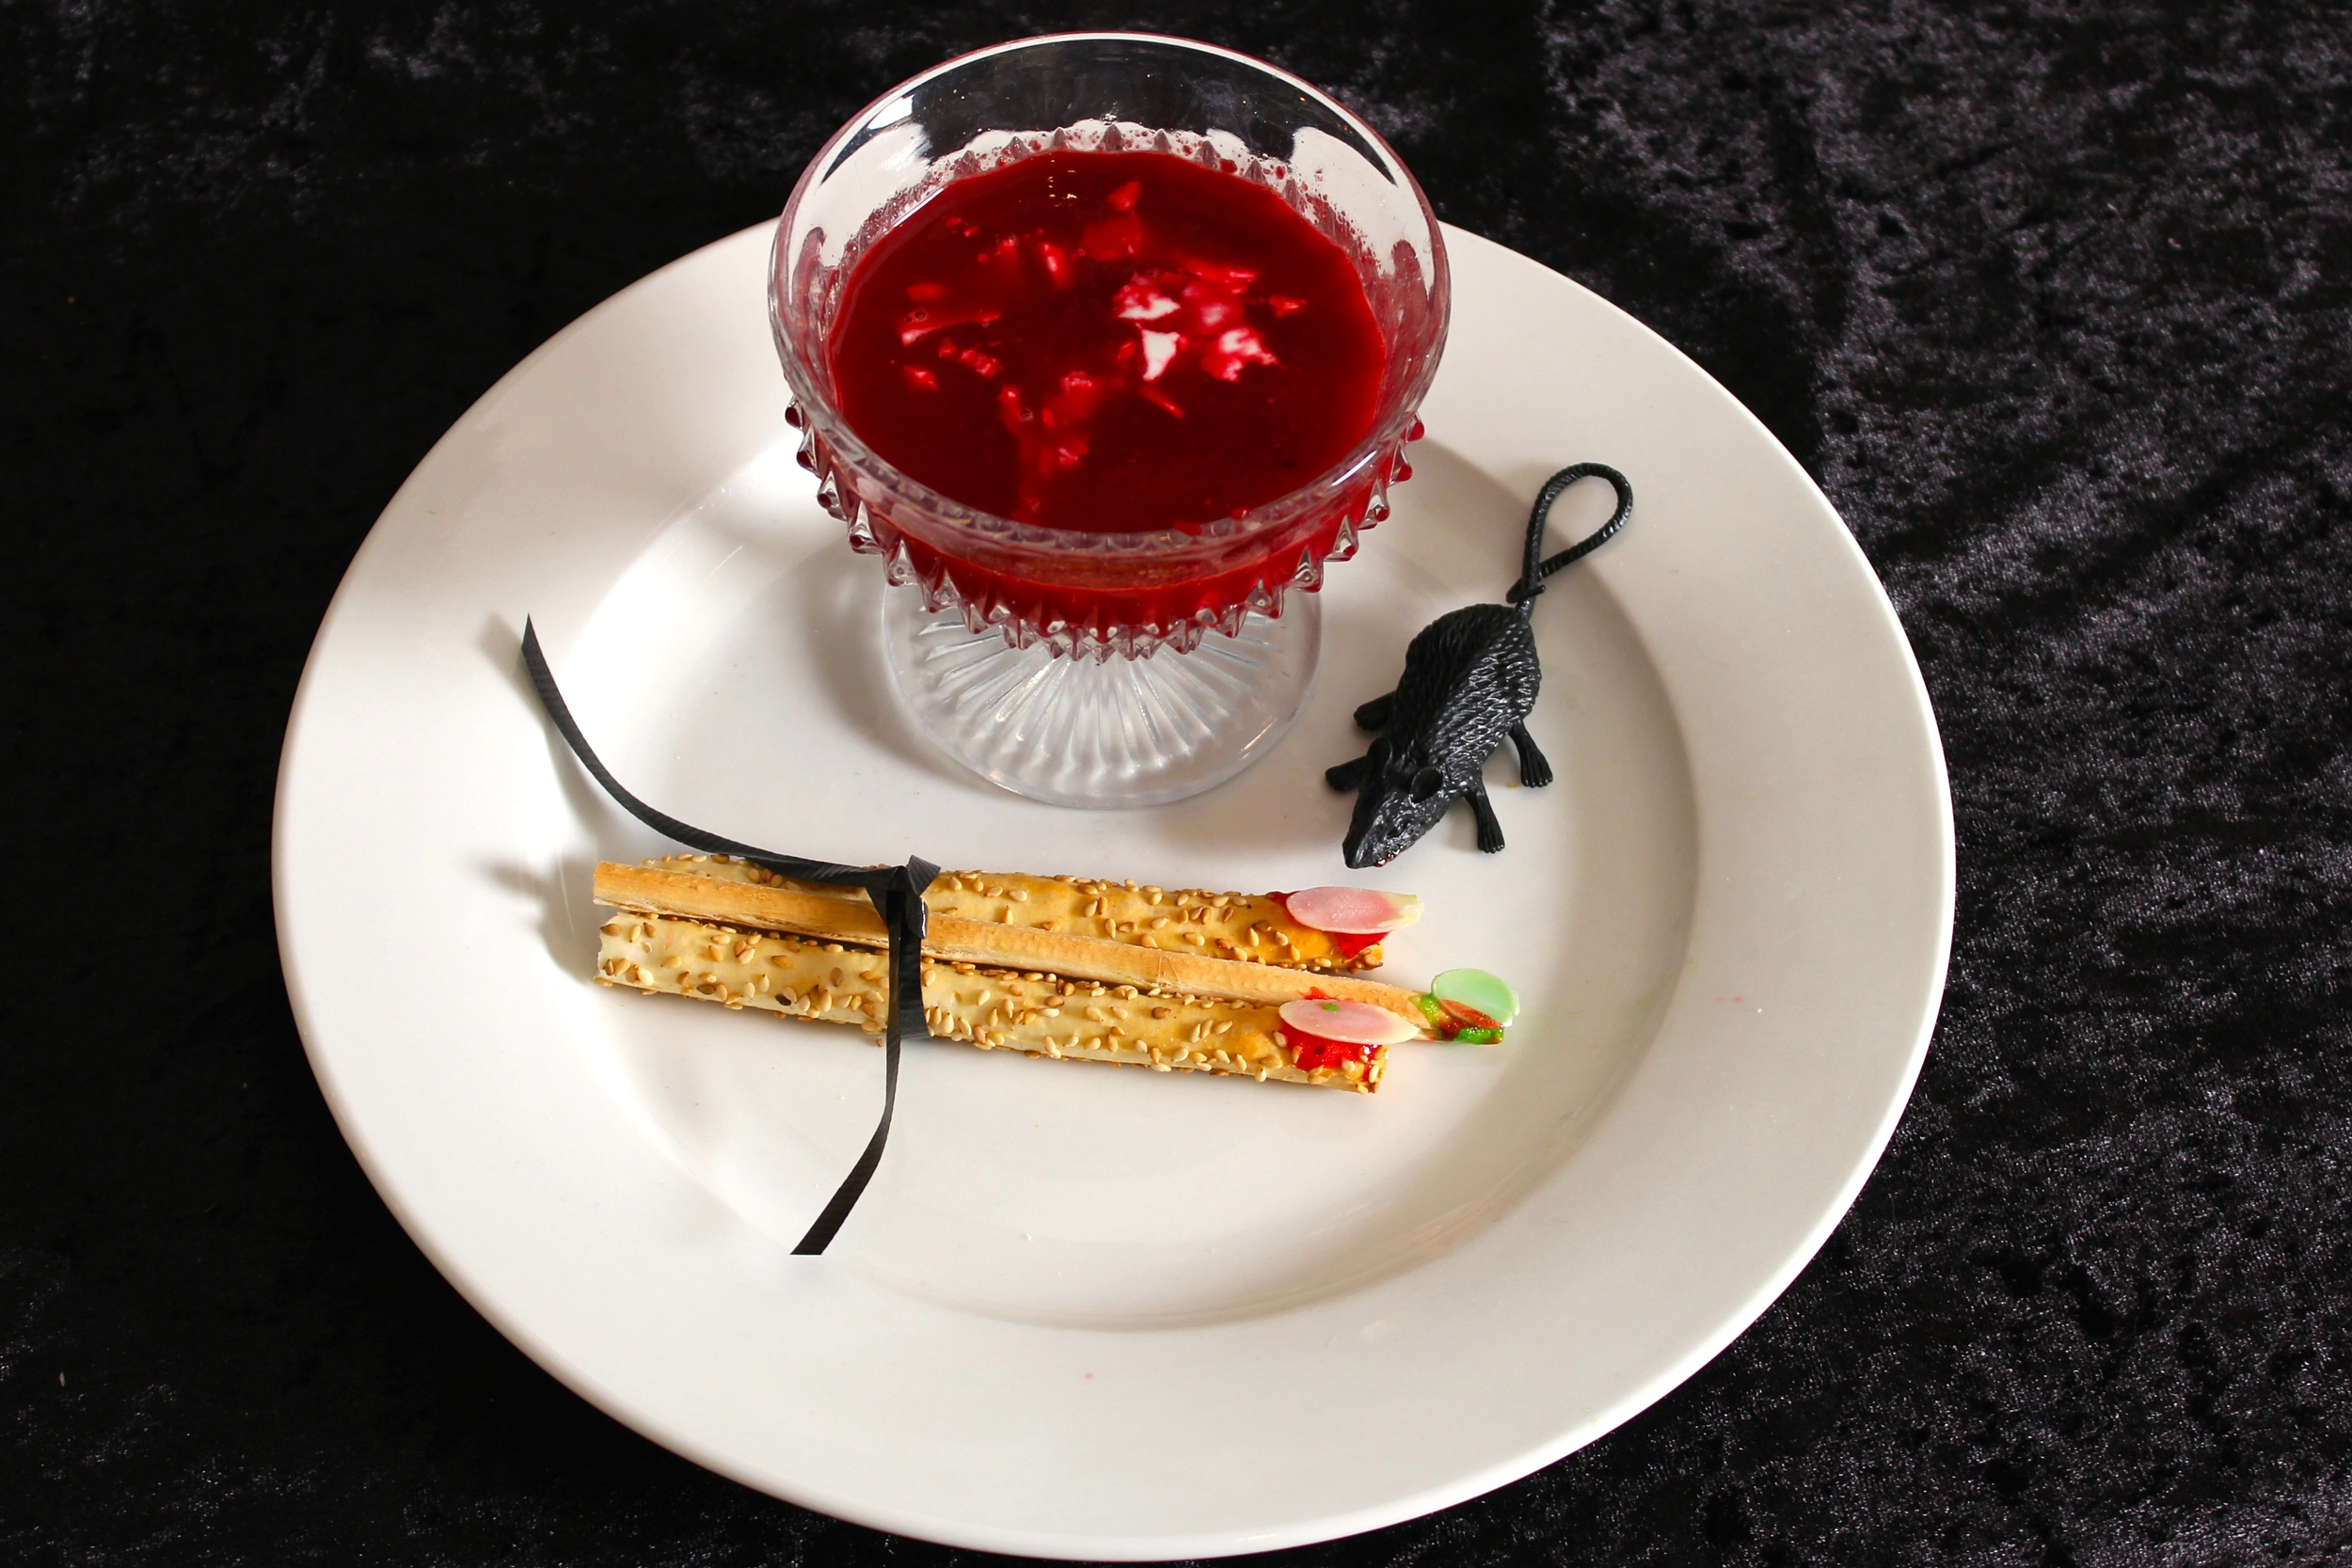 Gothic Dinner Party - Borscht with Italian Bread